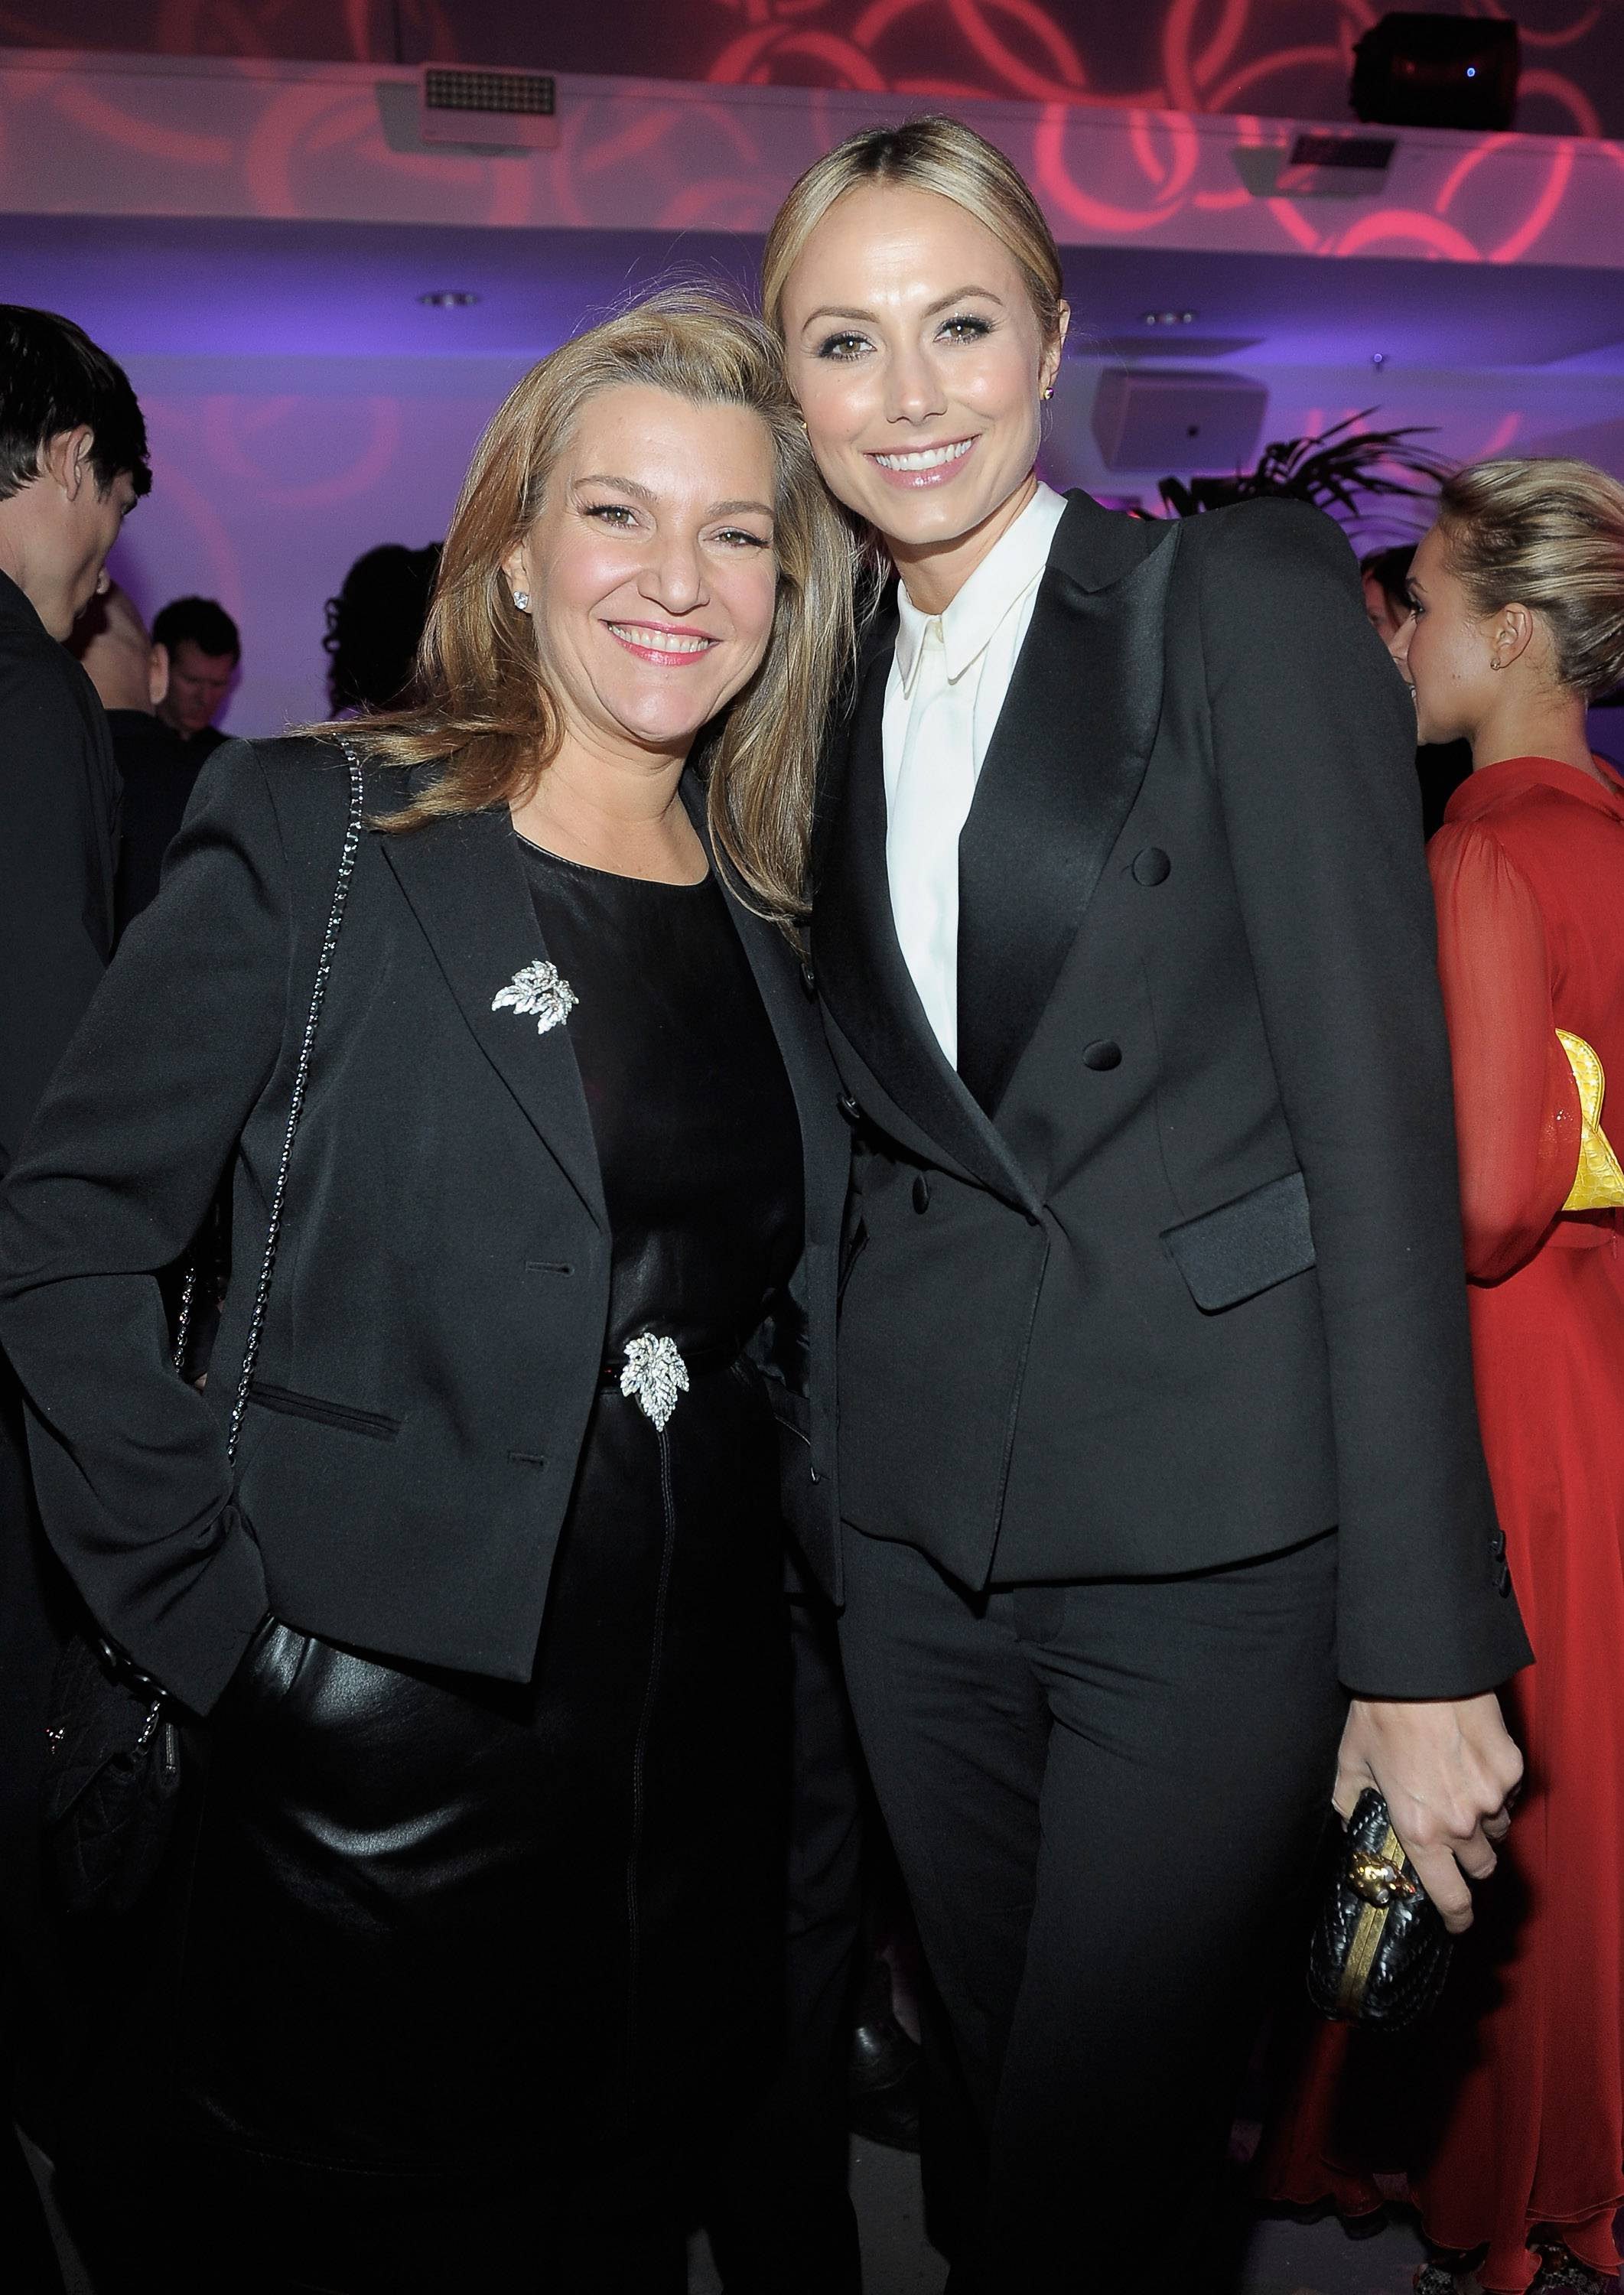 Senior West Coast Editor of Vanity Fair Krista Smith and actress Stacy Keibler